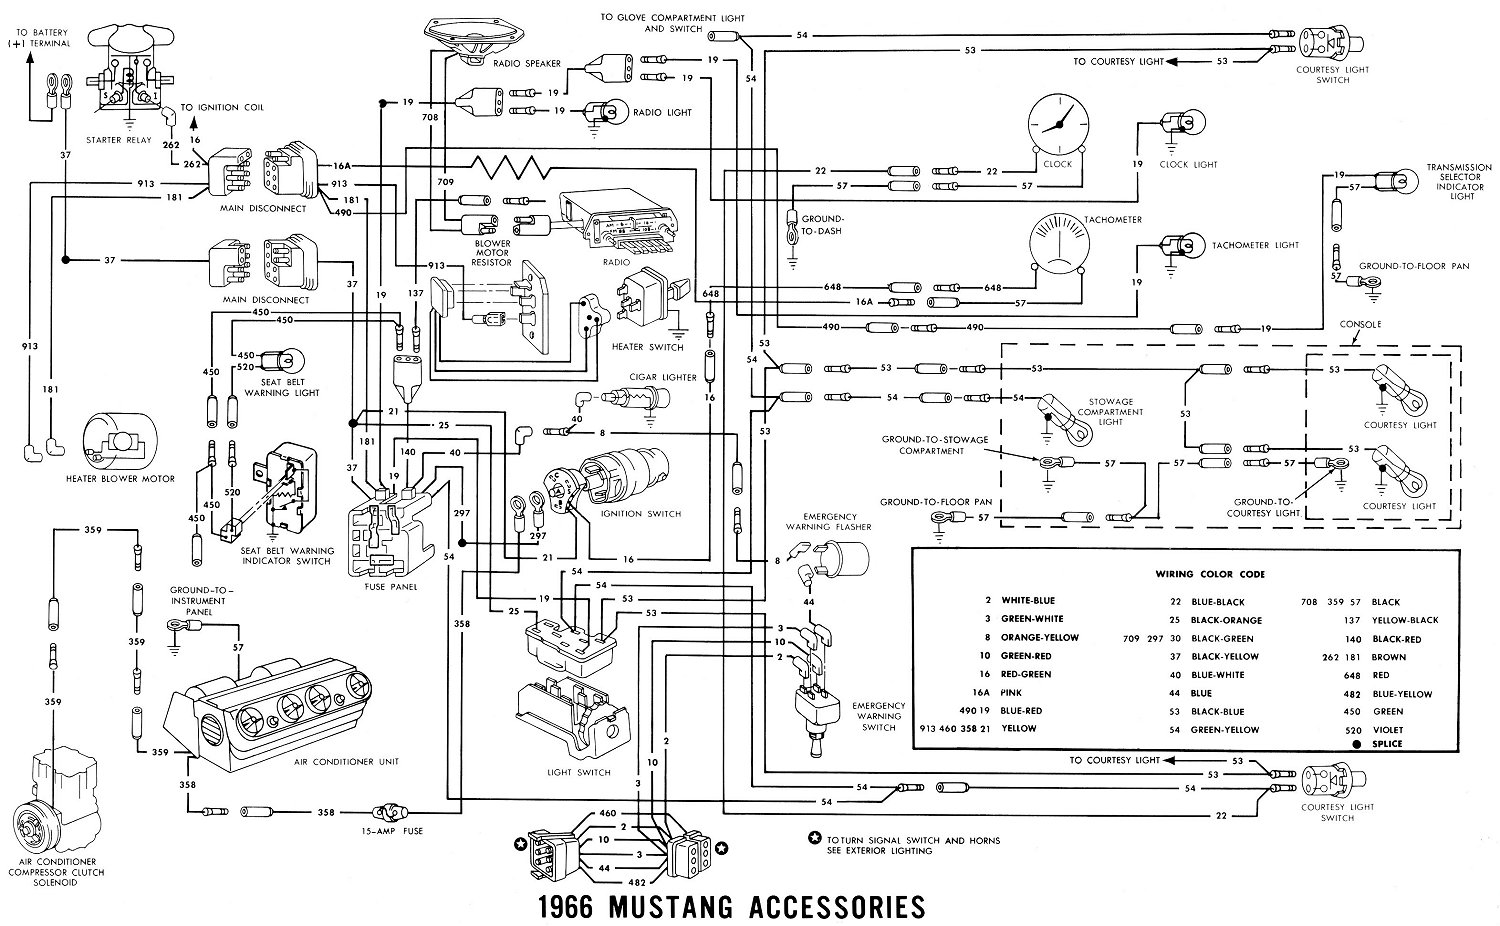 hight resolution of 1966 mustang wiring harness diagram detailed schematics diagram rh lelandlutheran com 1965 mustang color wiring diagram